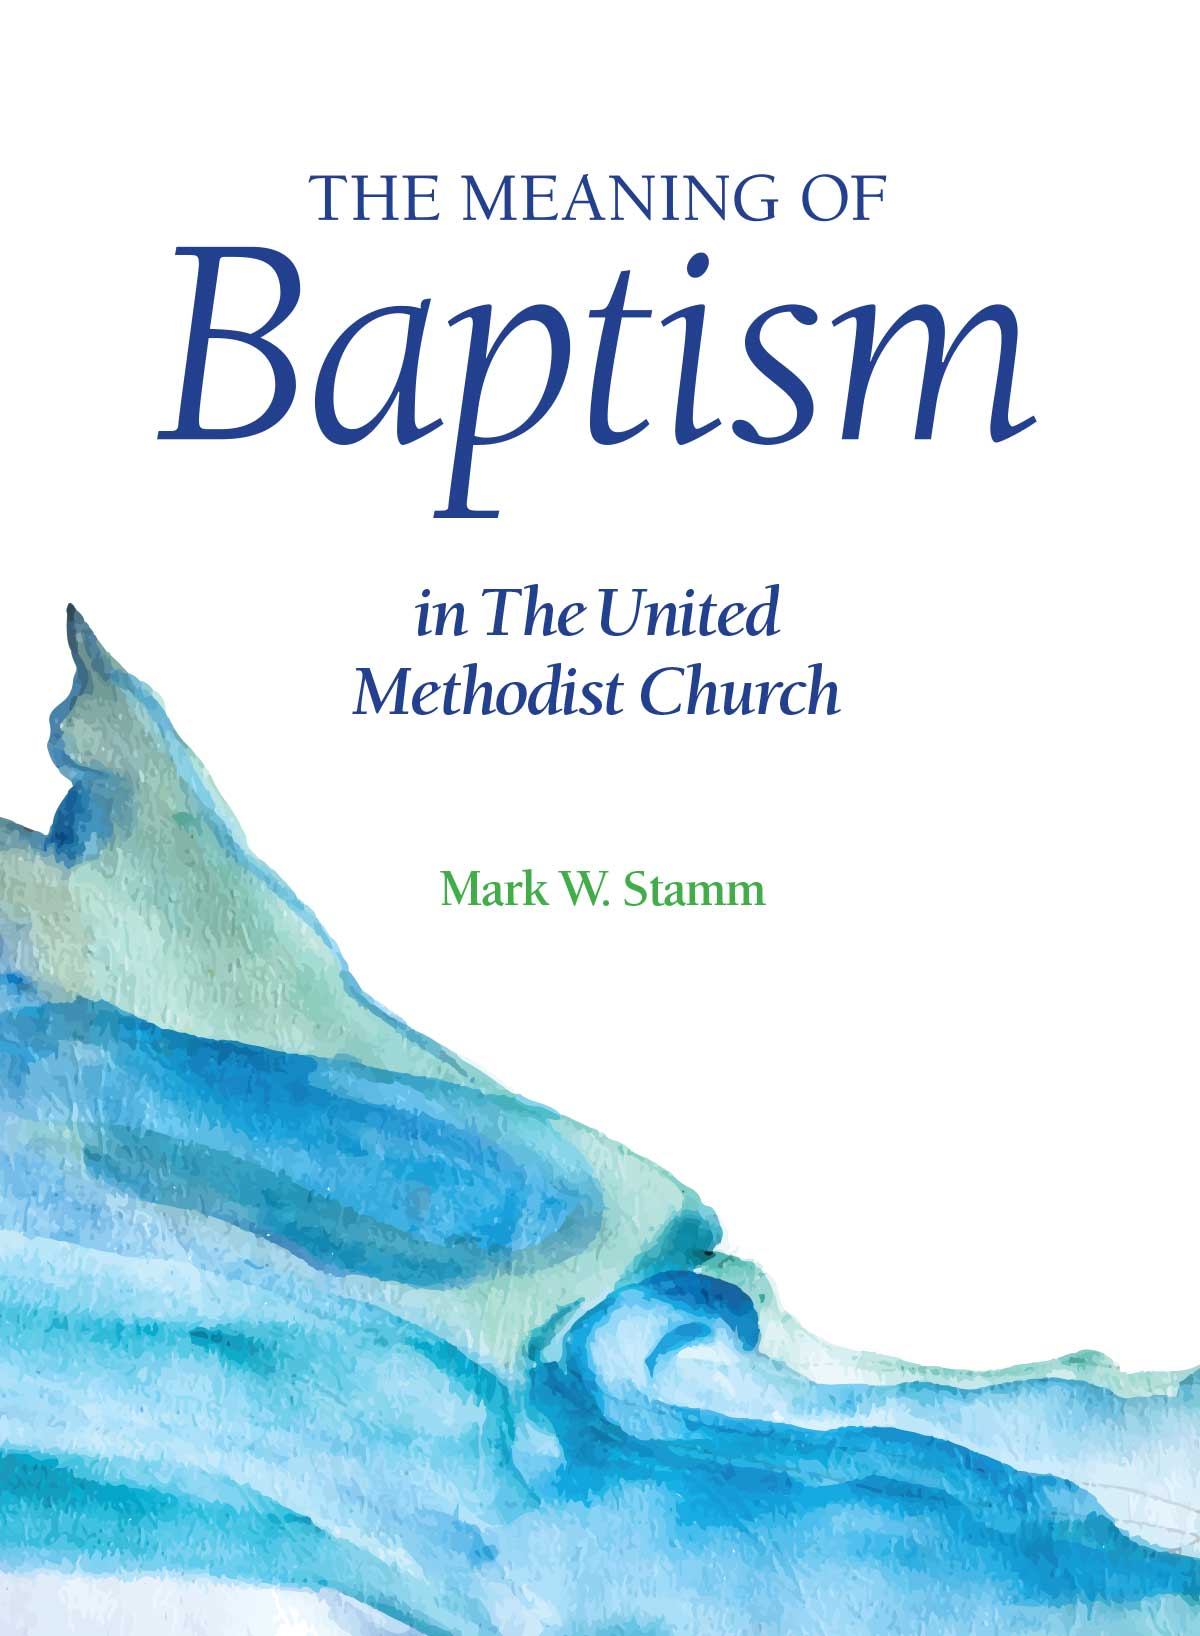 The Meaning of Baptism in the United Methodist Church - Mark W. Stamm